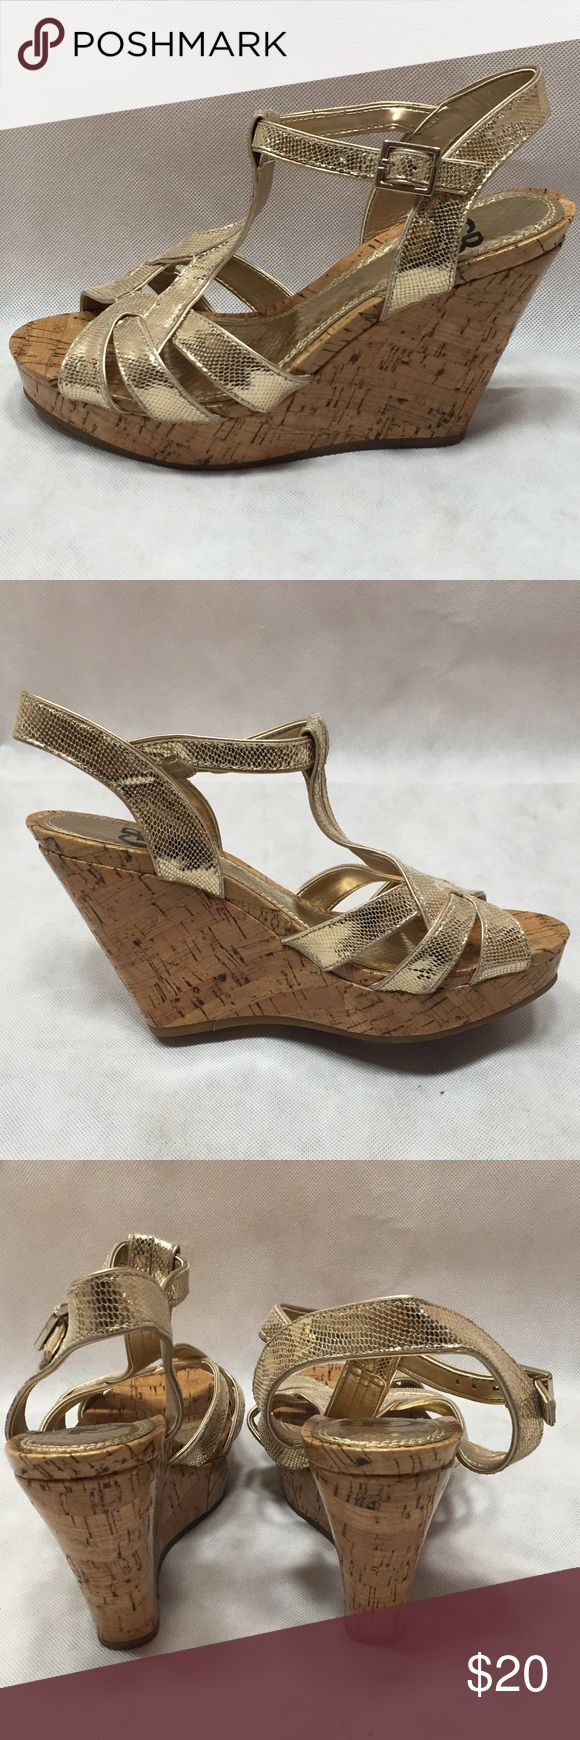 Gianni Bini Good condition. Gianni Bini Shoes Wedges